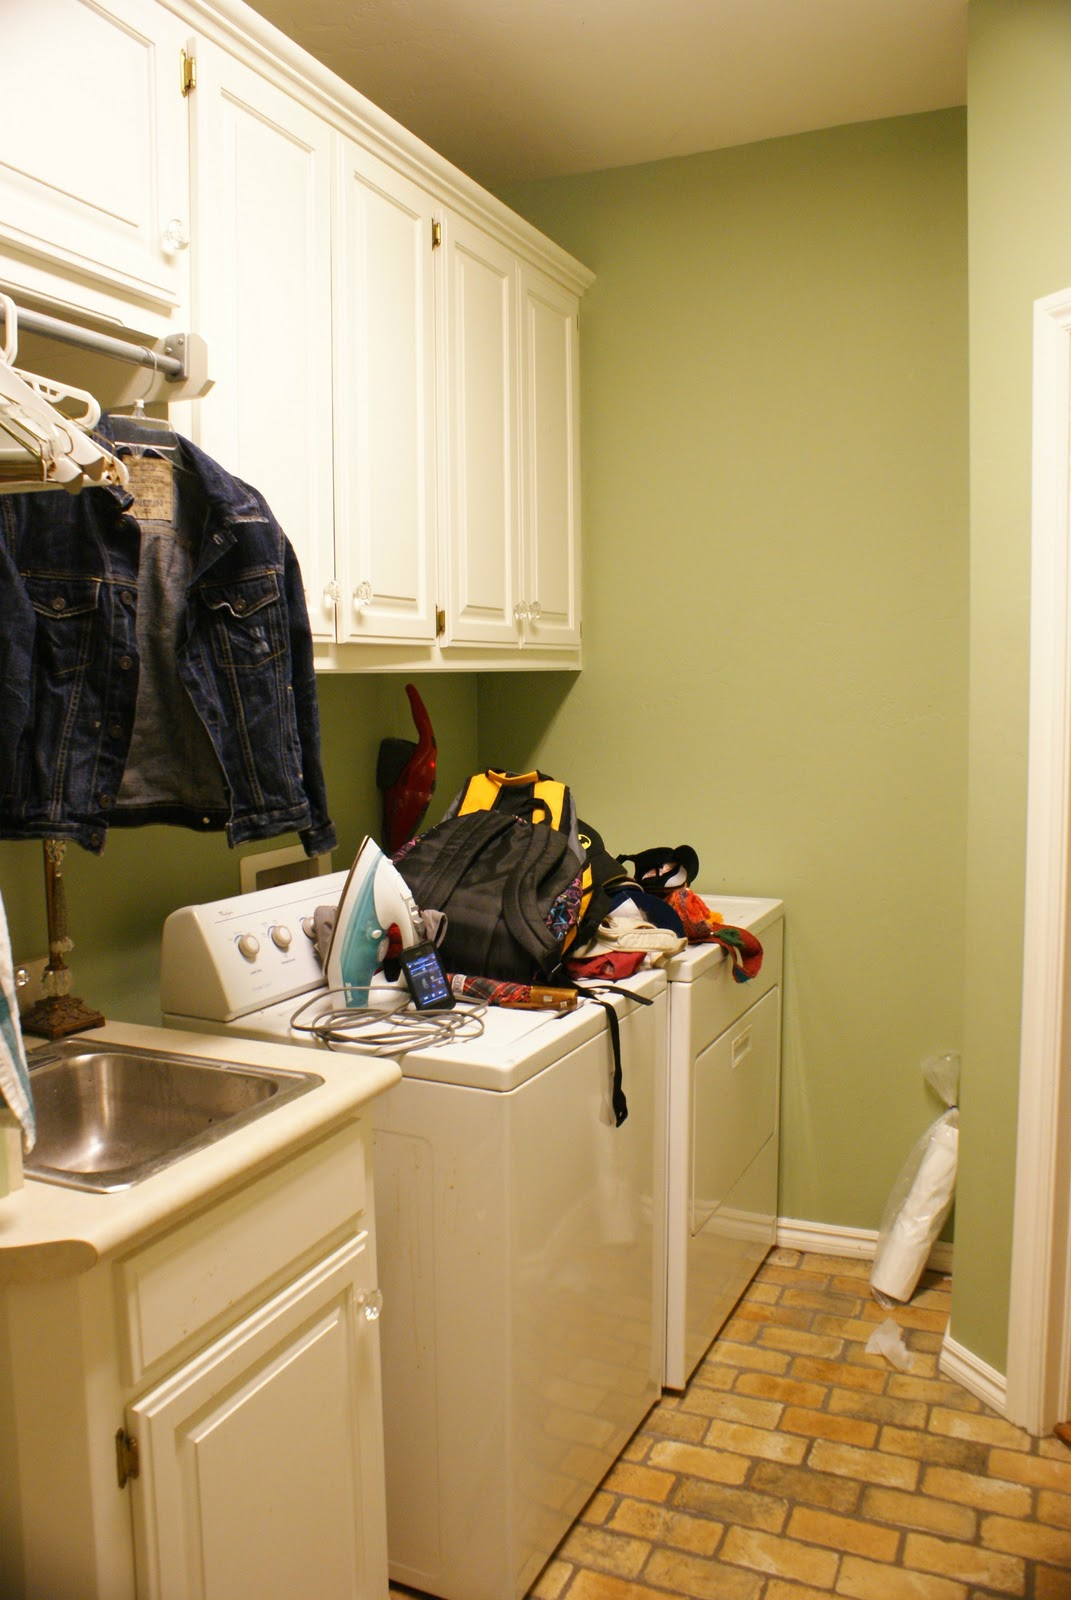 Now I WANT To Be In My Laundry Room! - Dimples and Tangles